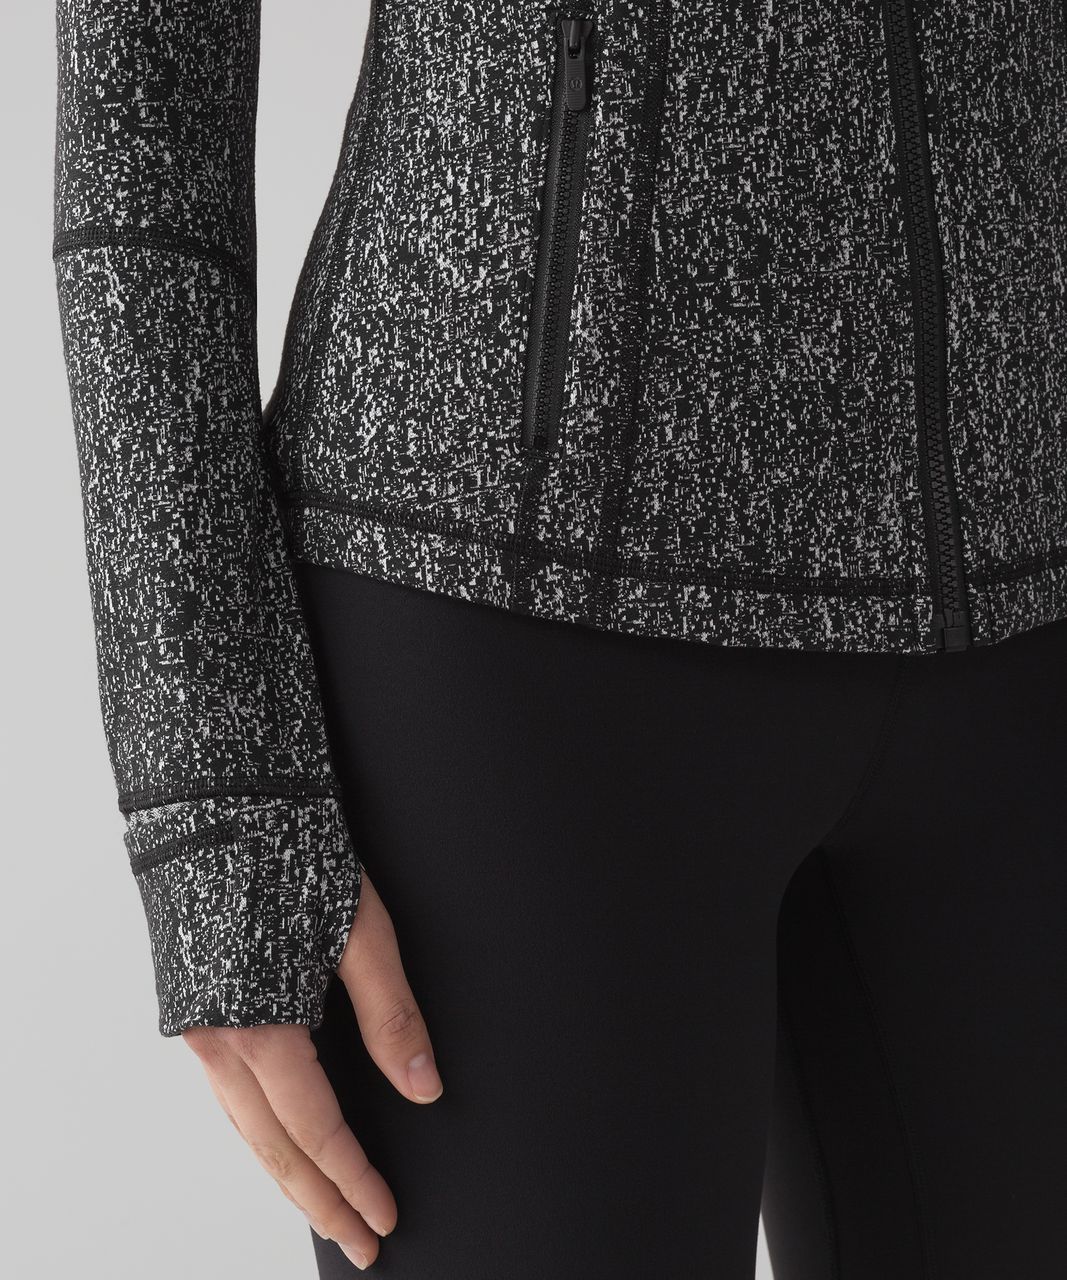 Lululemon Define Jacket - Running Luon Suited Jacquard Black White